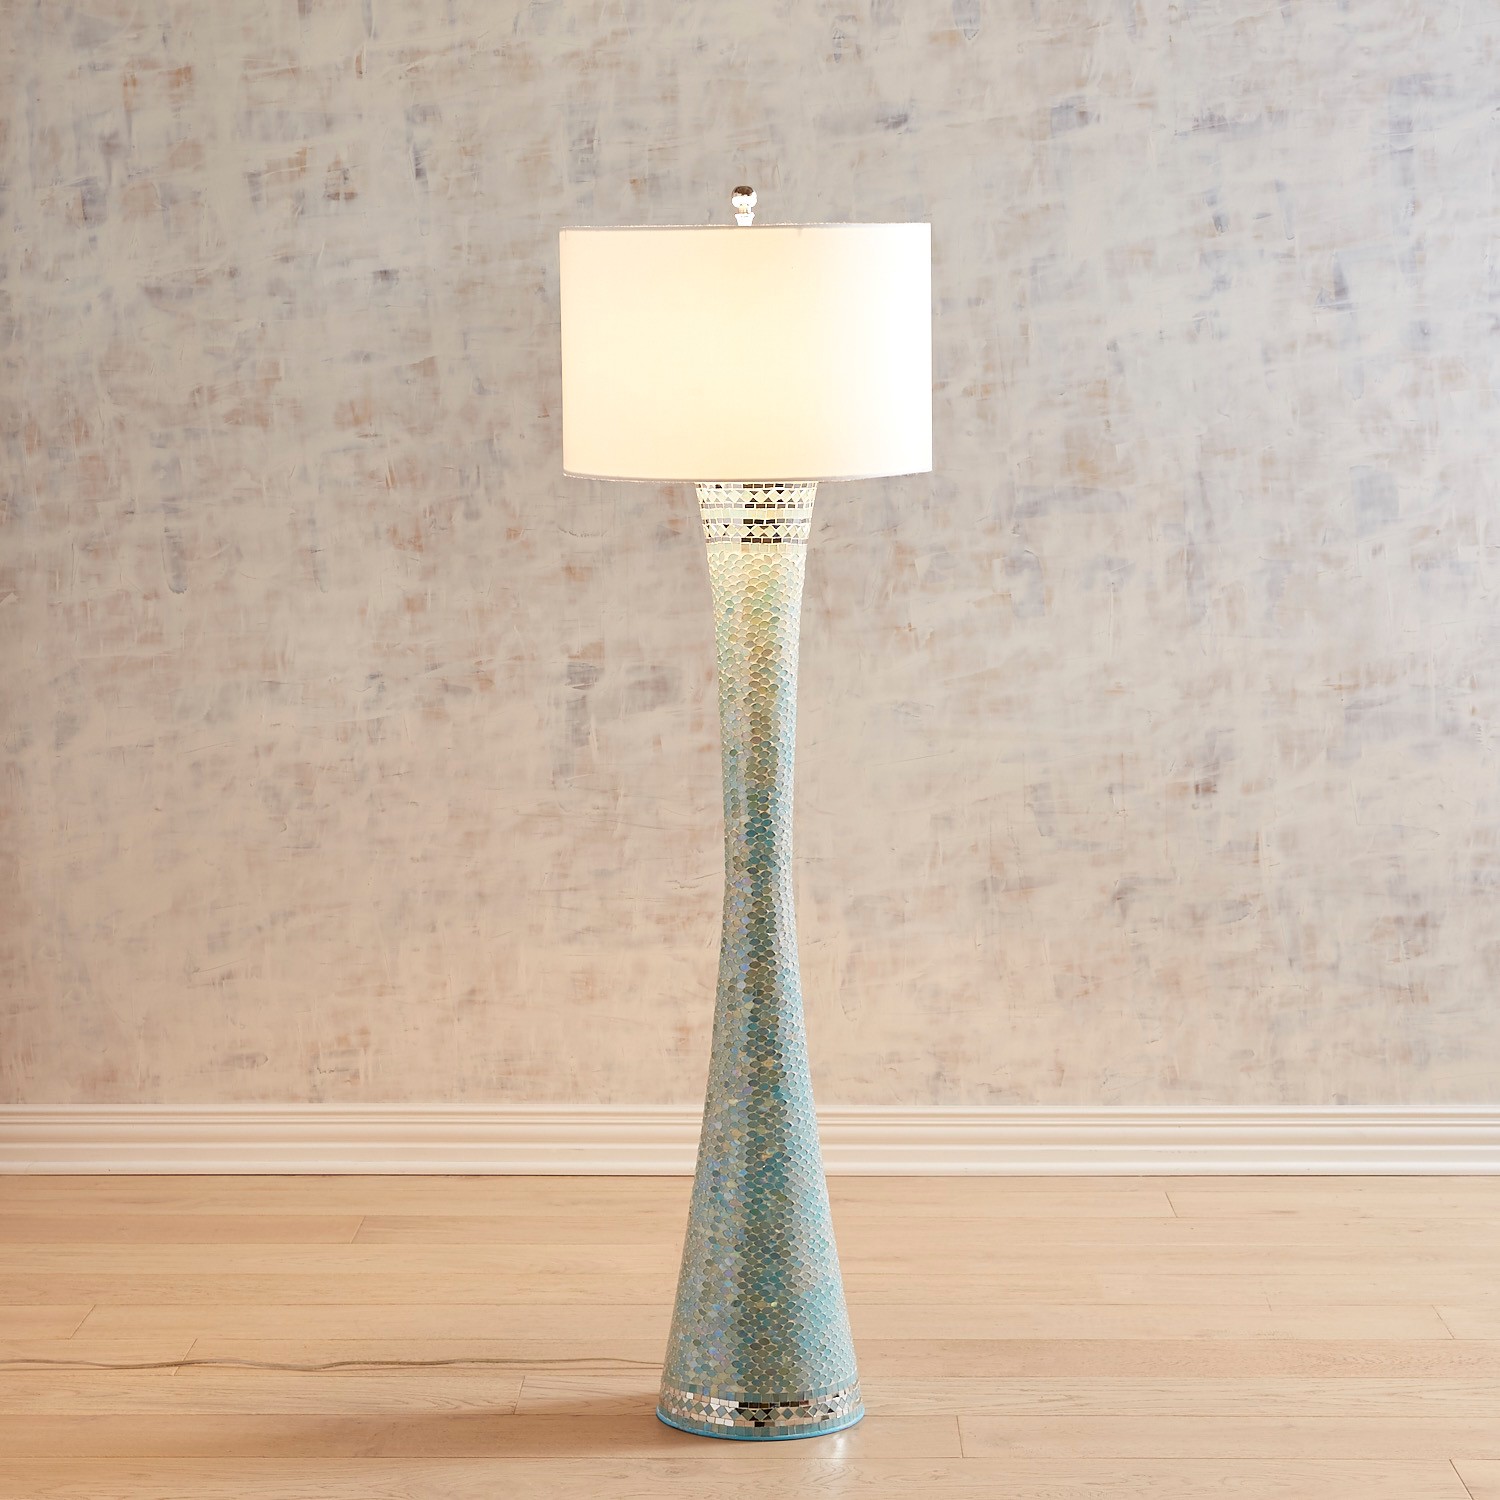 Aqua Mosaic Floor Lamp